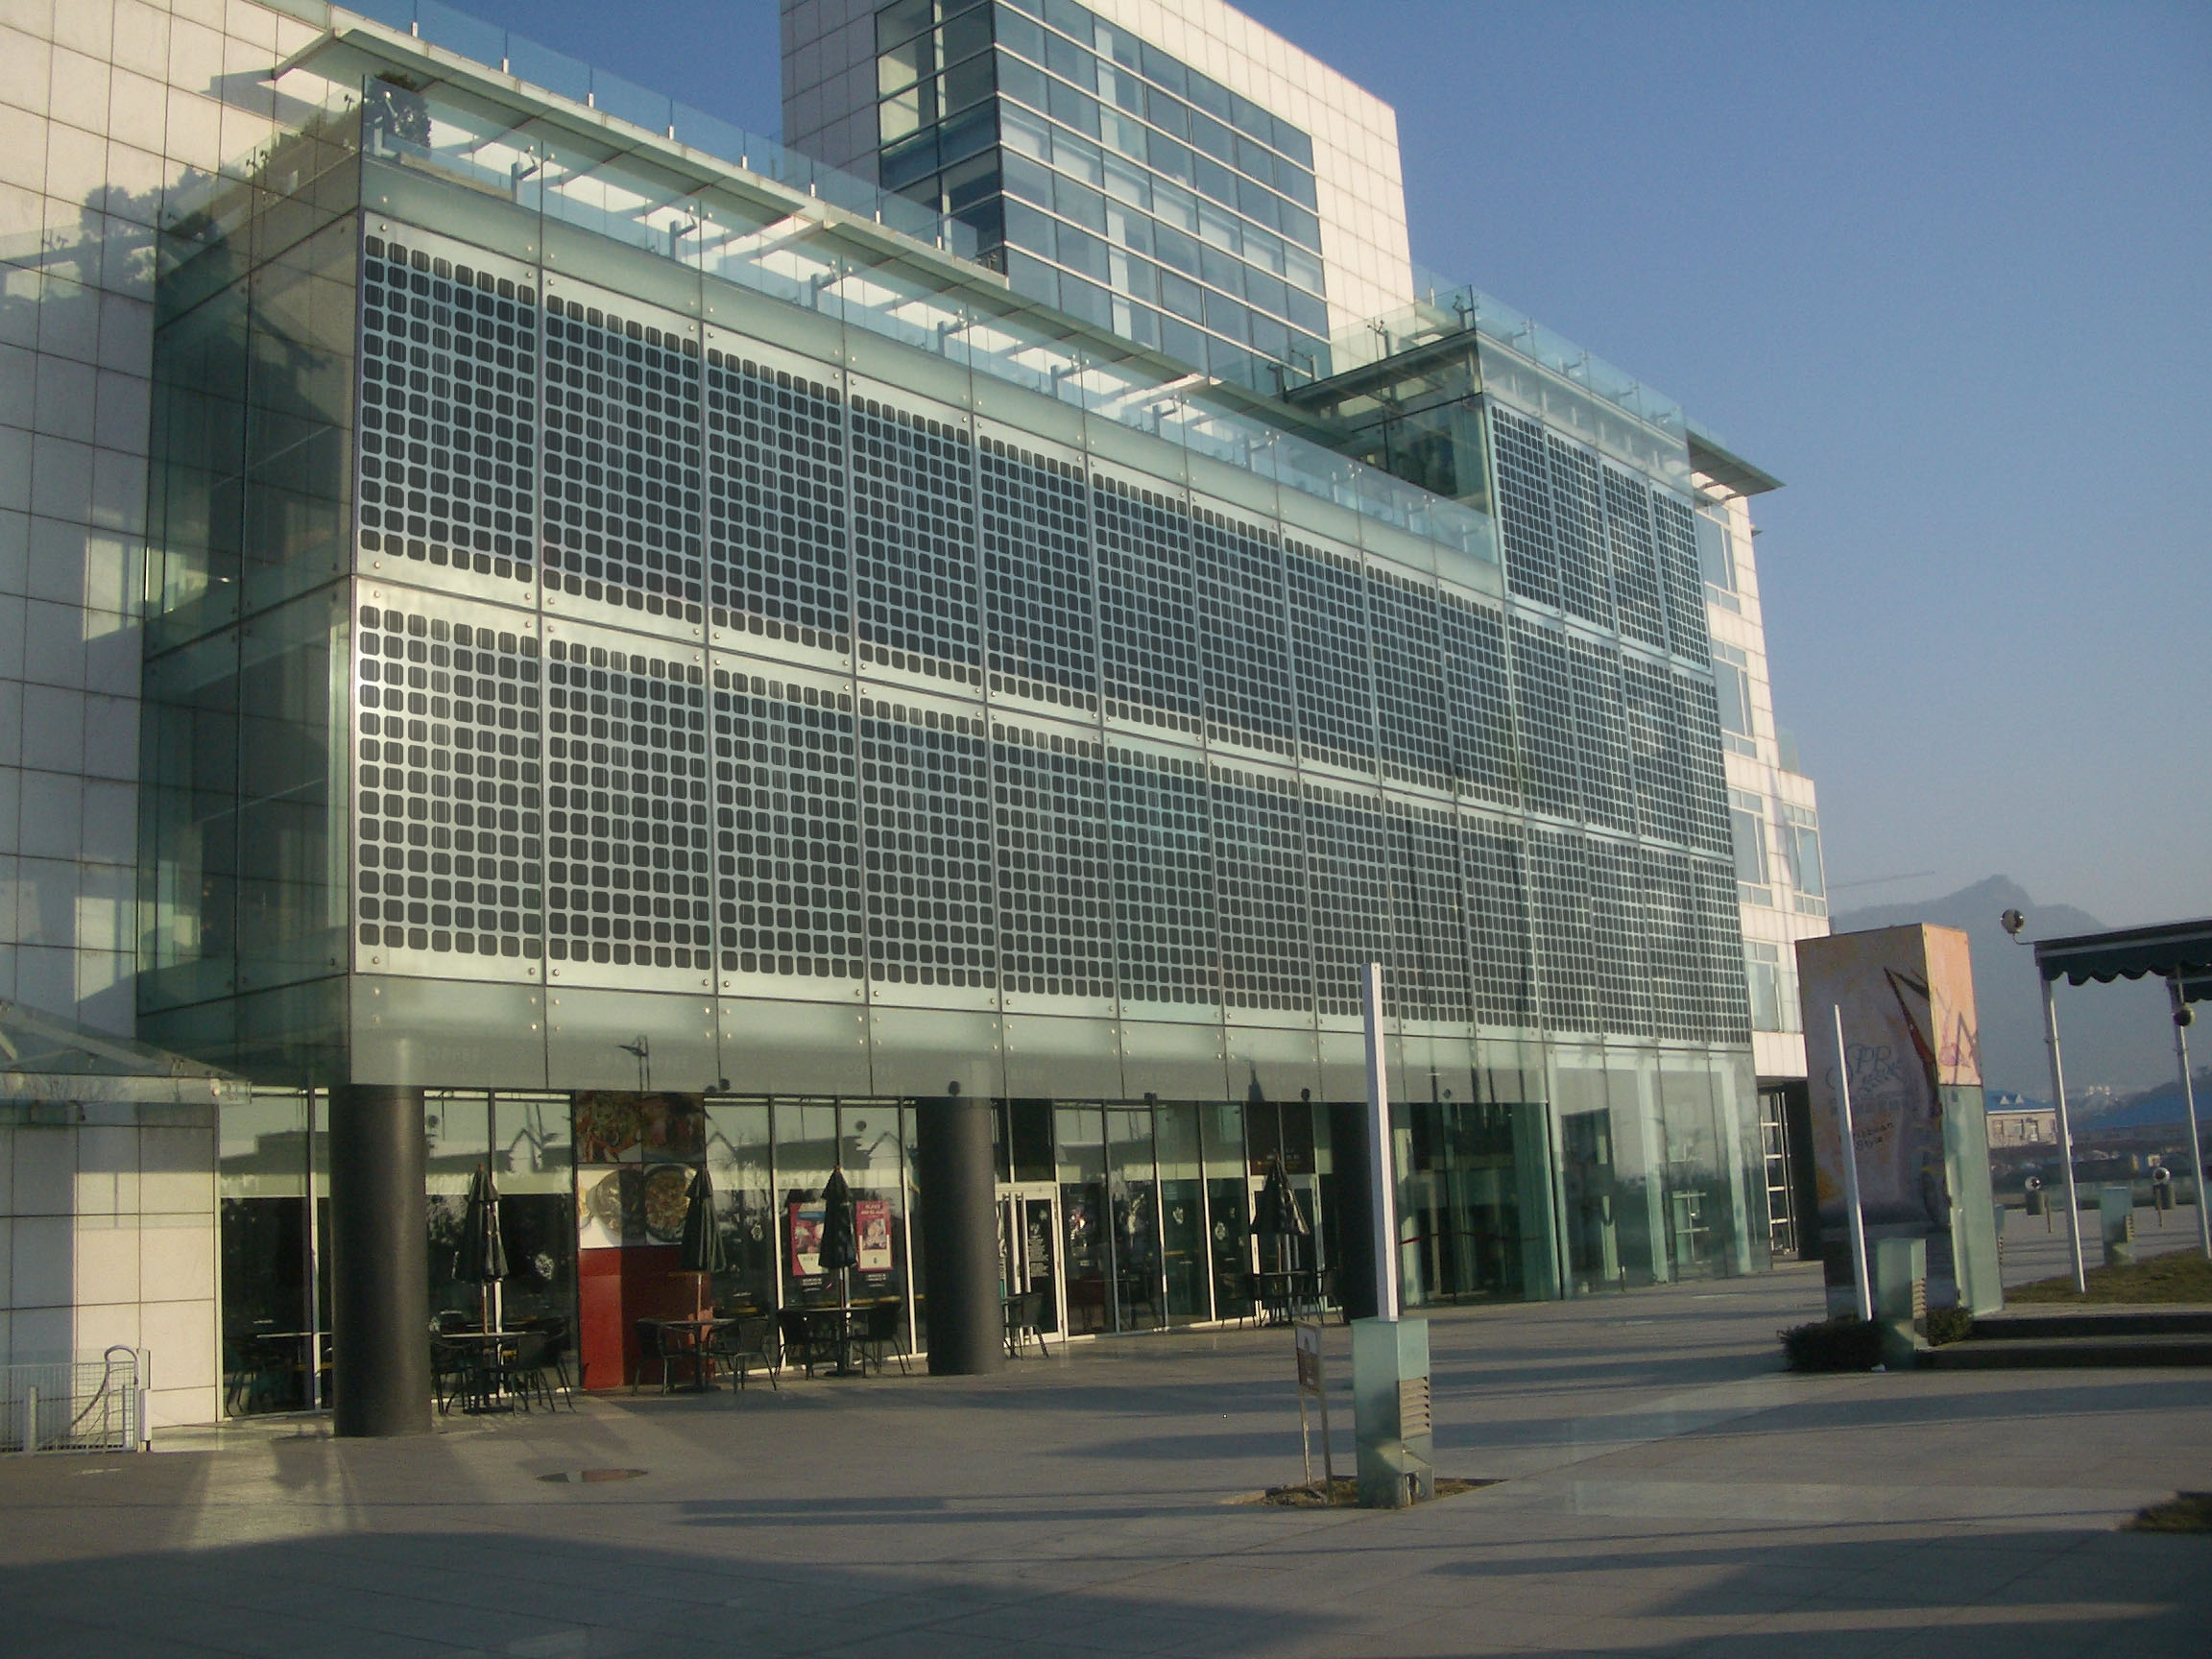 Fachada BIPV -Building Integrated Photovoltaics